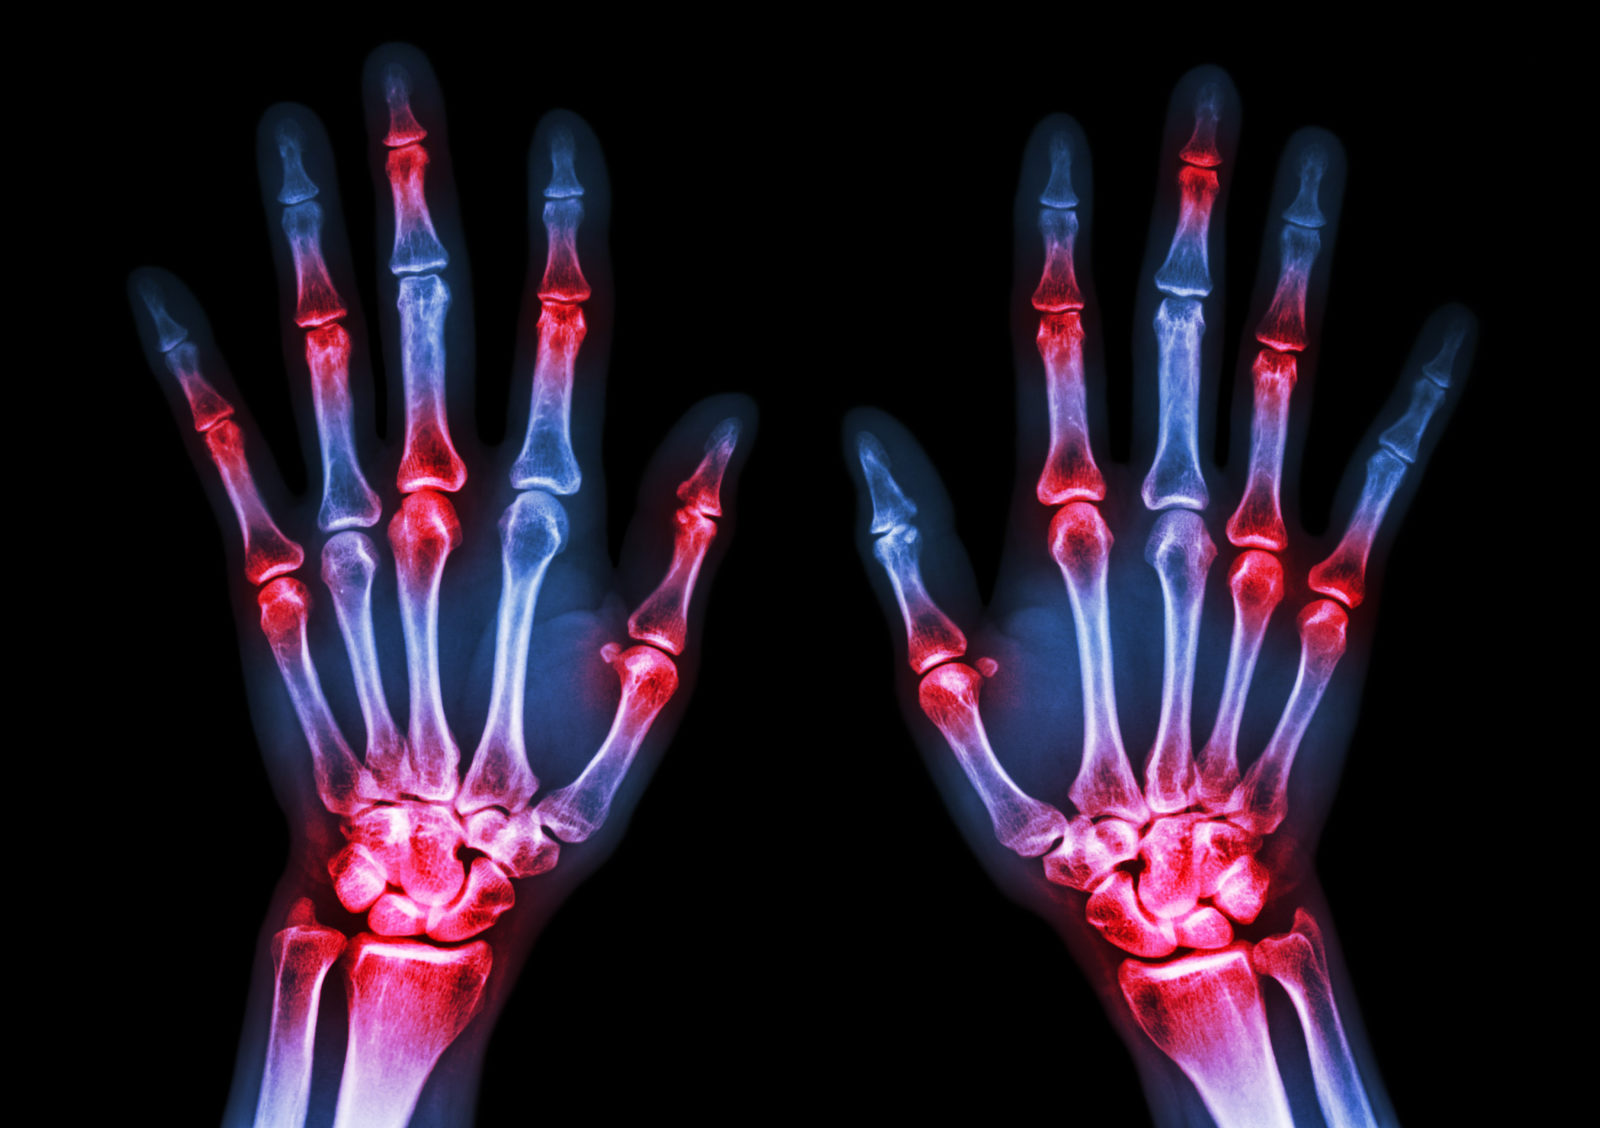 early warning signs of rheumatoid arthritis, Watch Out for Sneaky Early Warning Signs of Rheumatoid Arthritis